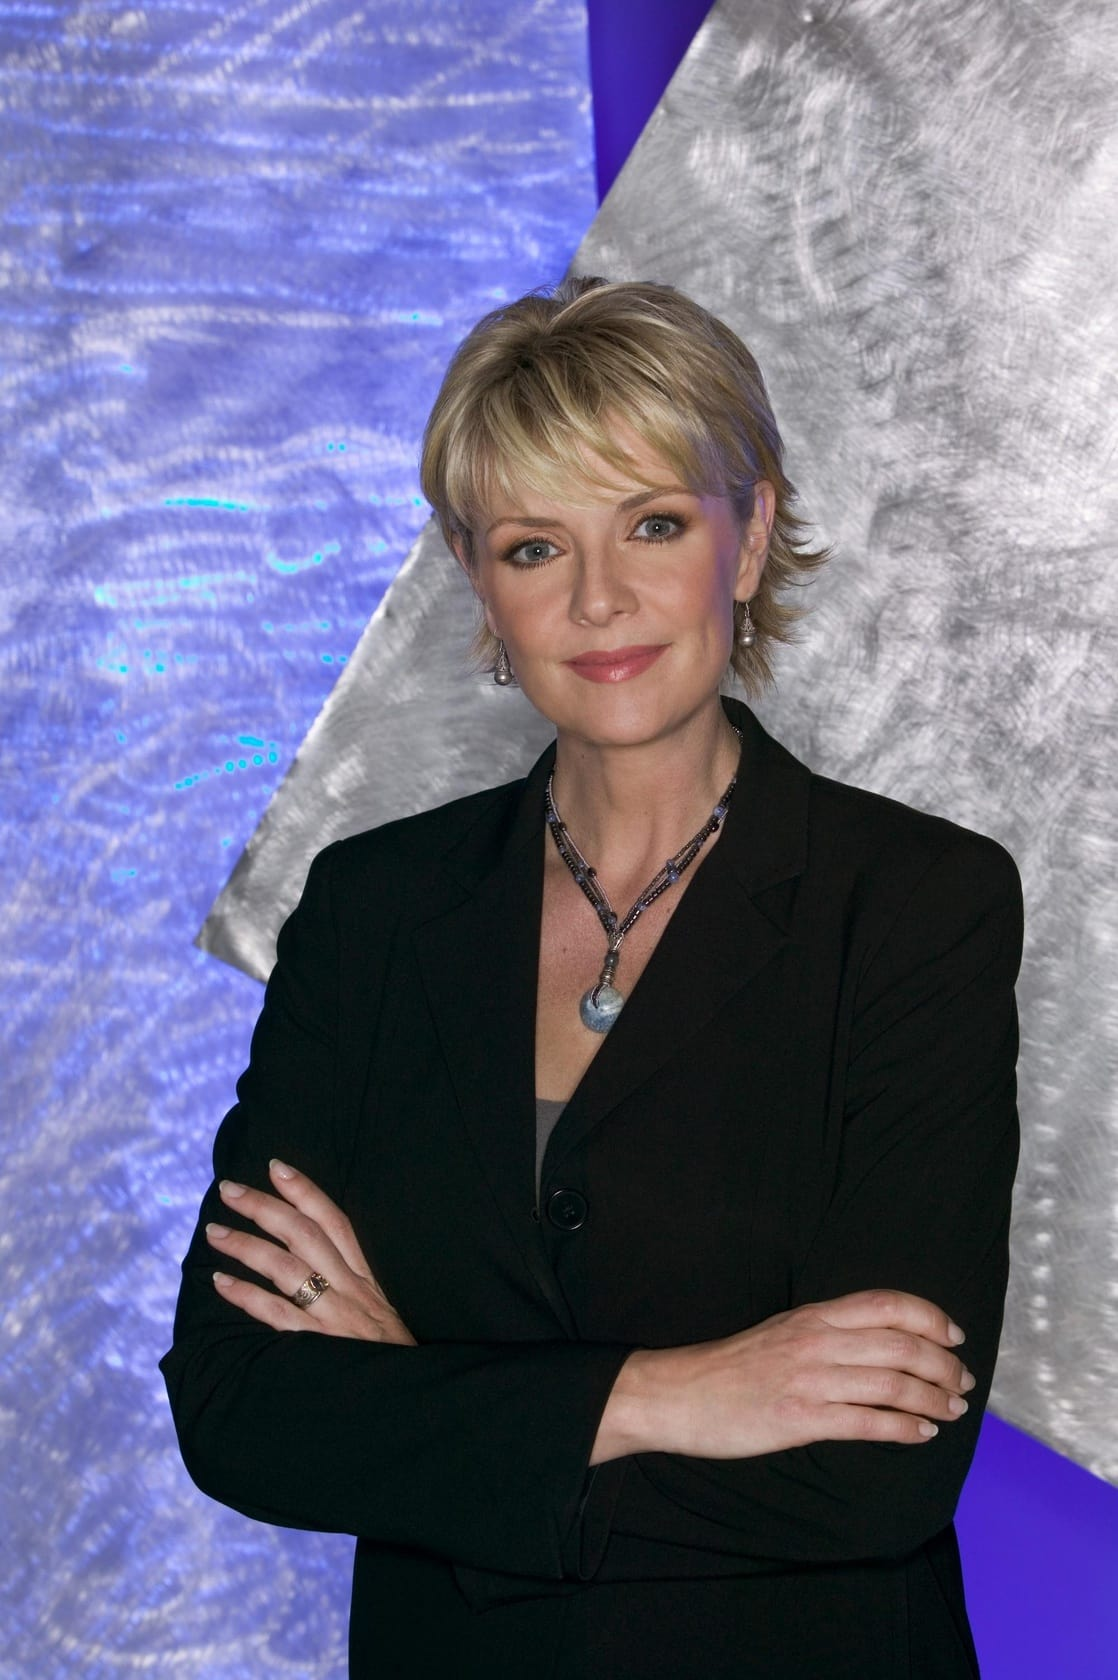 Amanda Tapping Sexy picture of amanda tapping